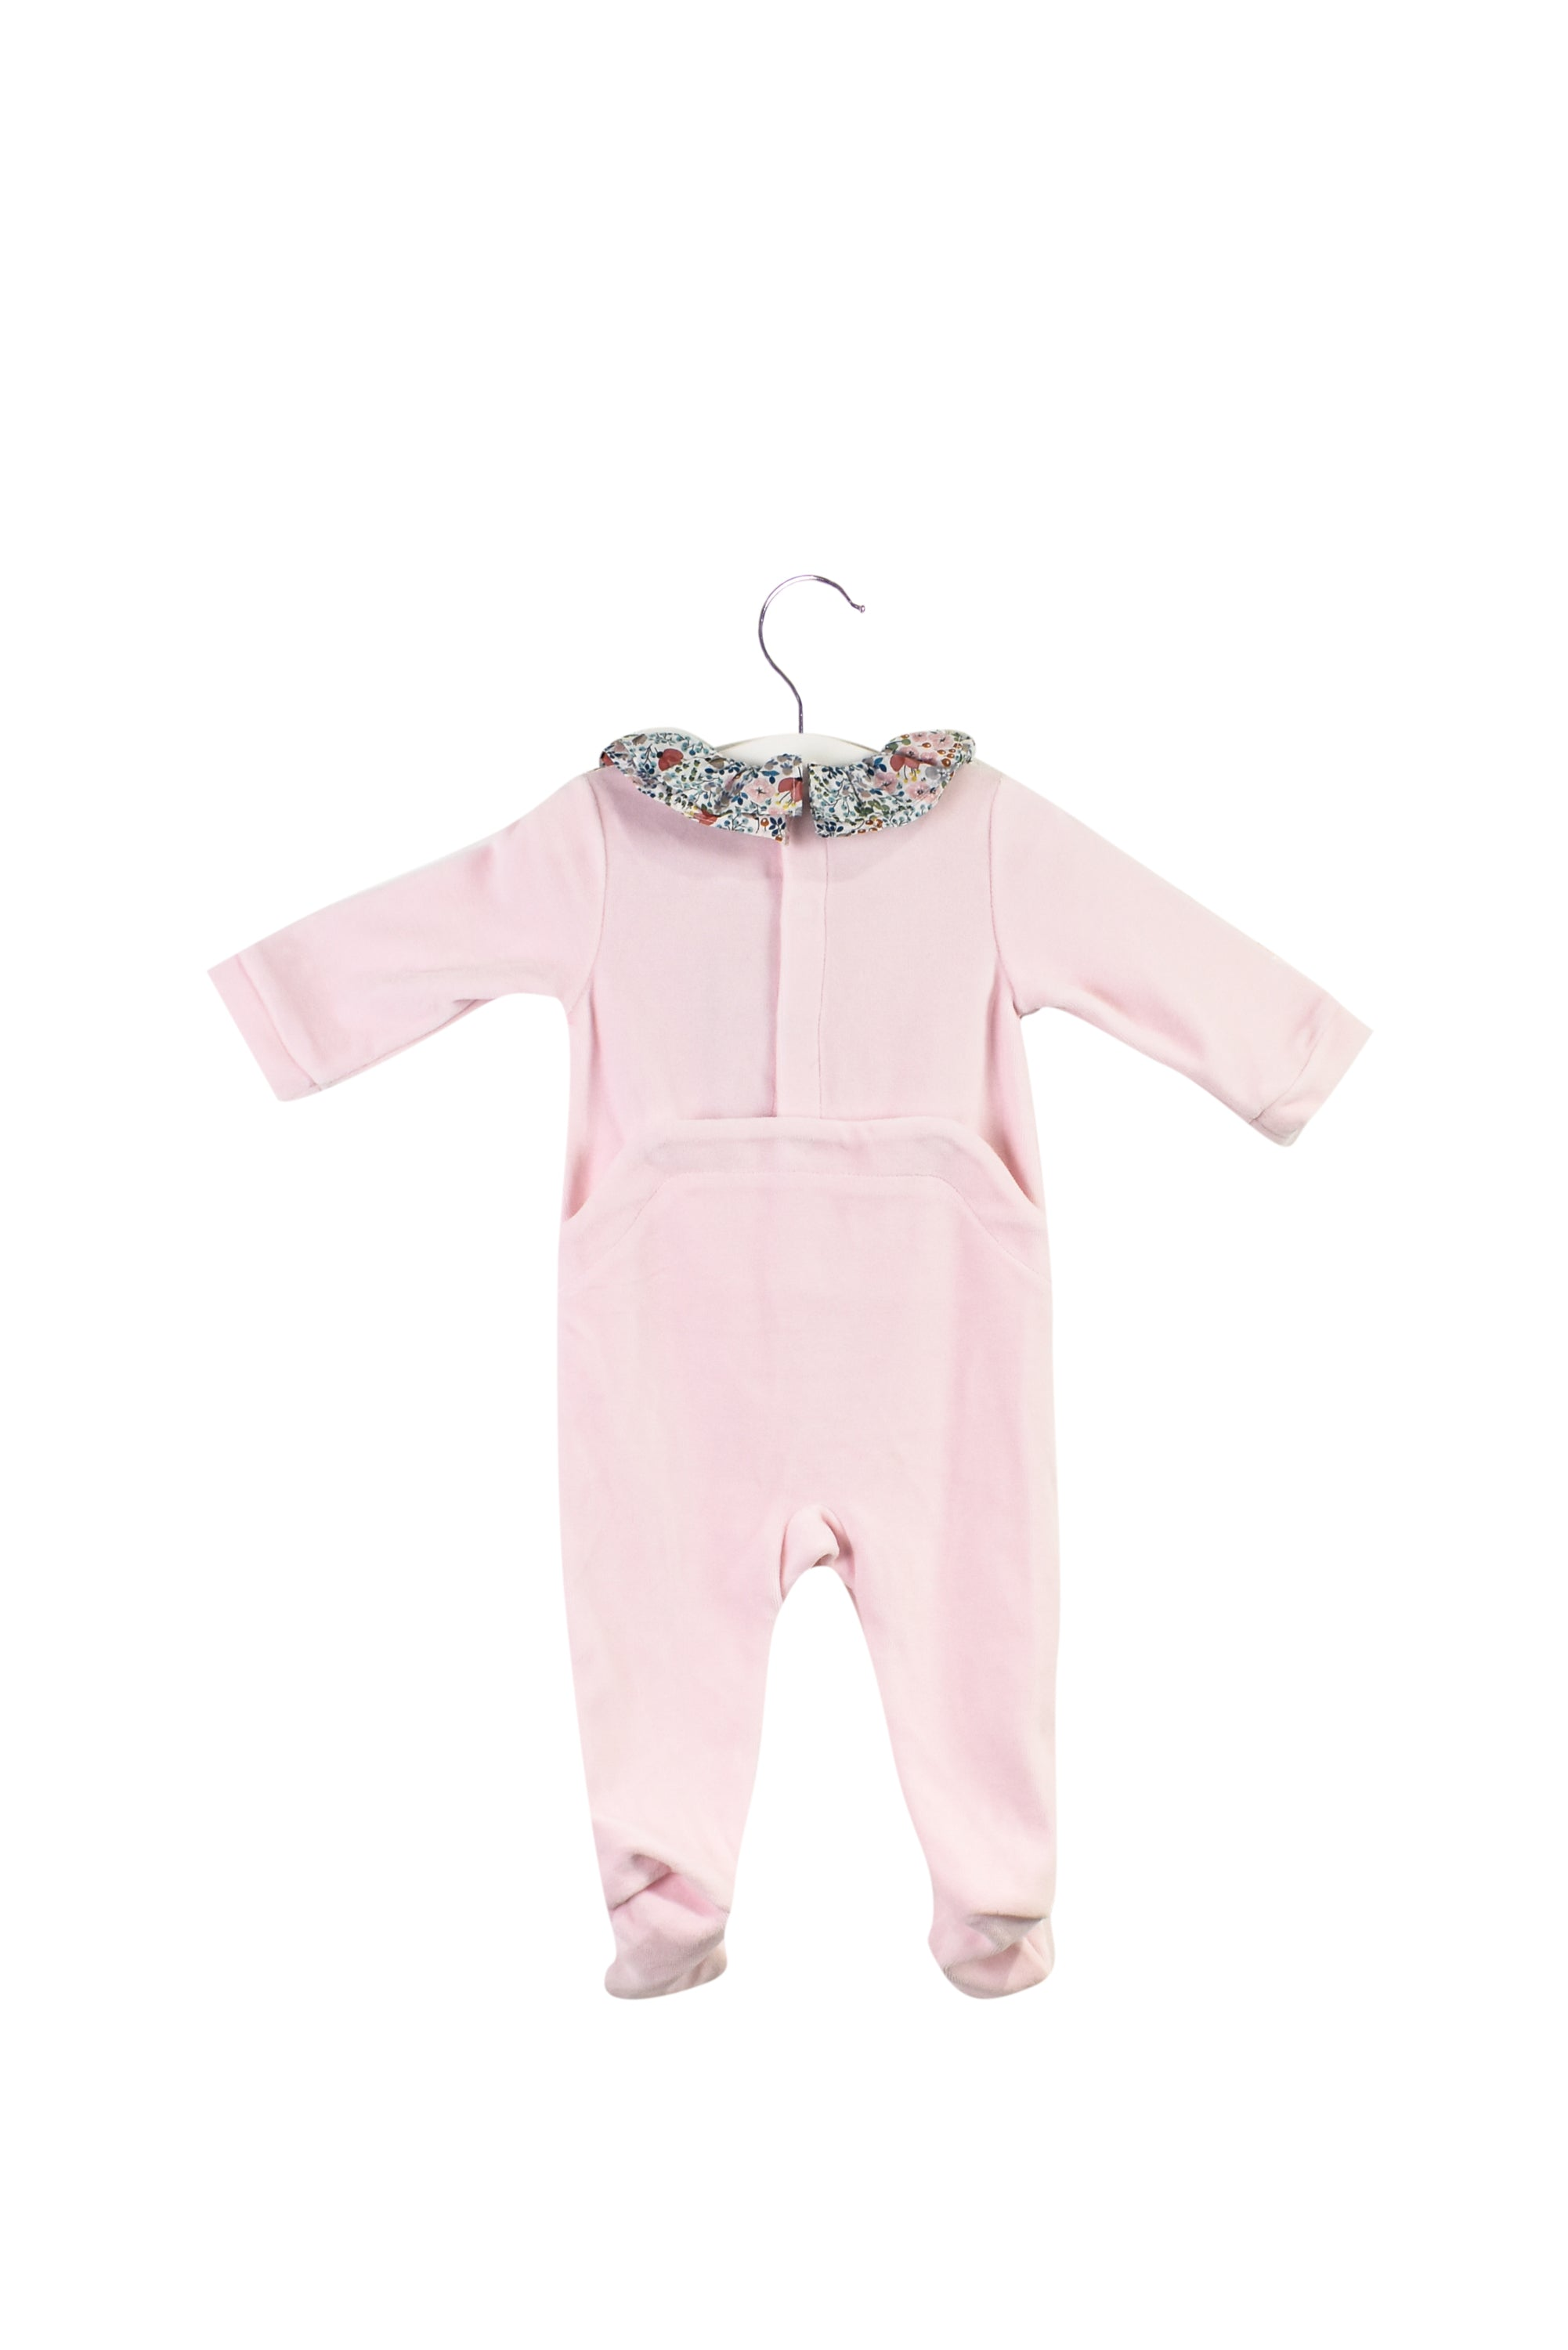 10031630 Jacadi Baby~Jumpsuit 6M at Retykle